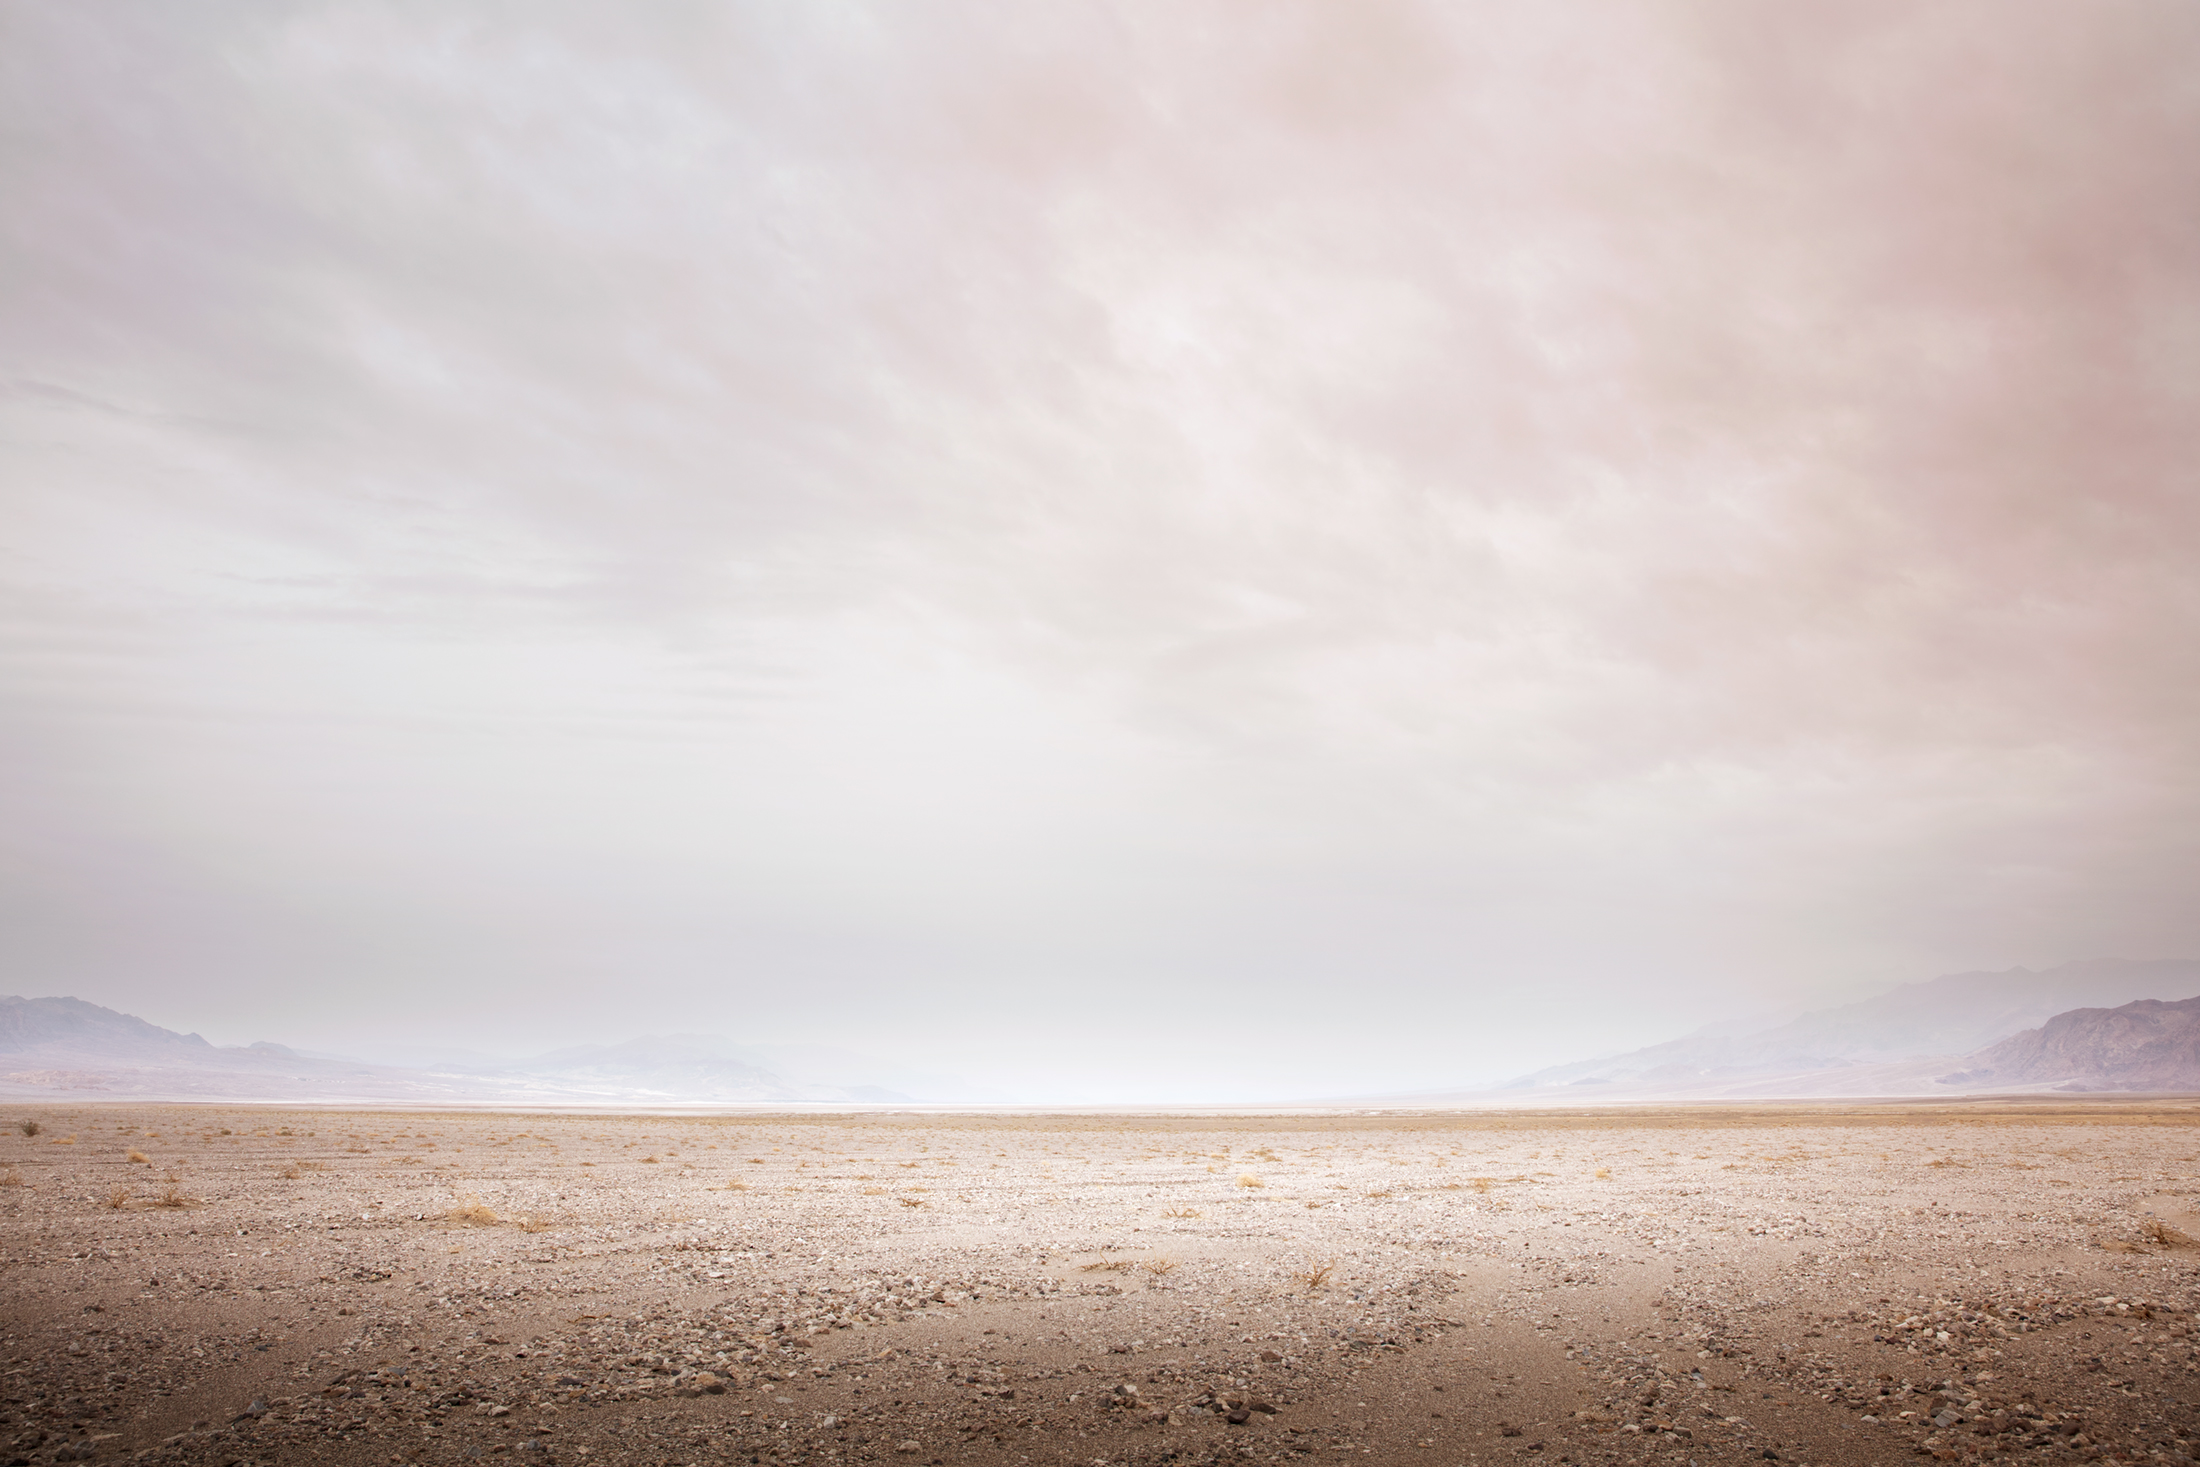 3) Infinity Series #2636, Death Valley. Photograph, 32X48 inches, 2018.